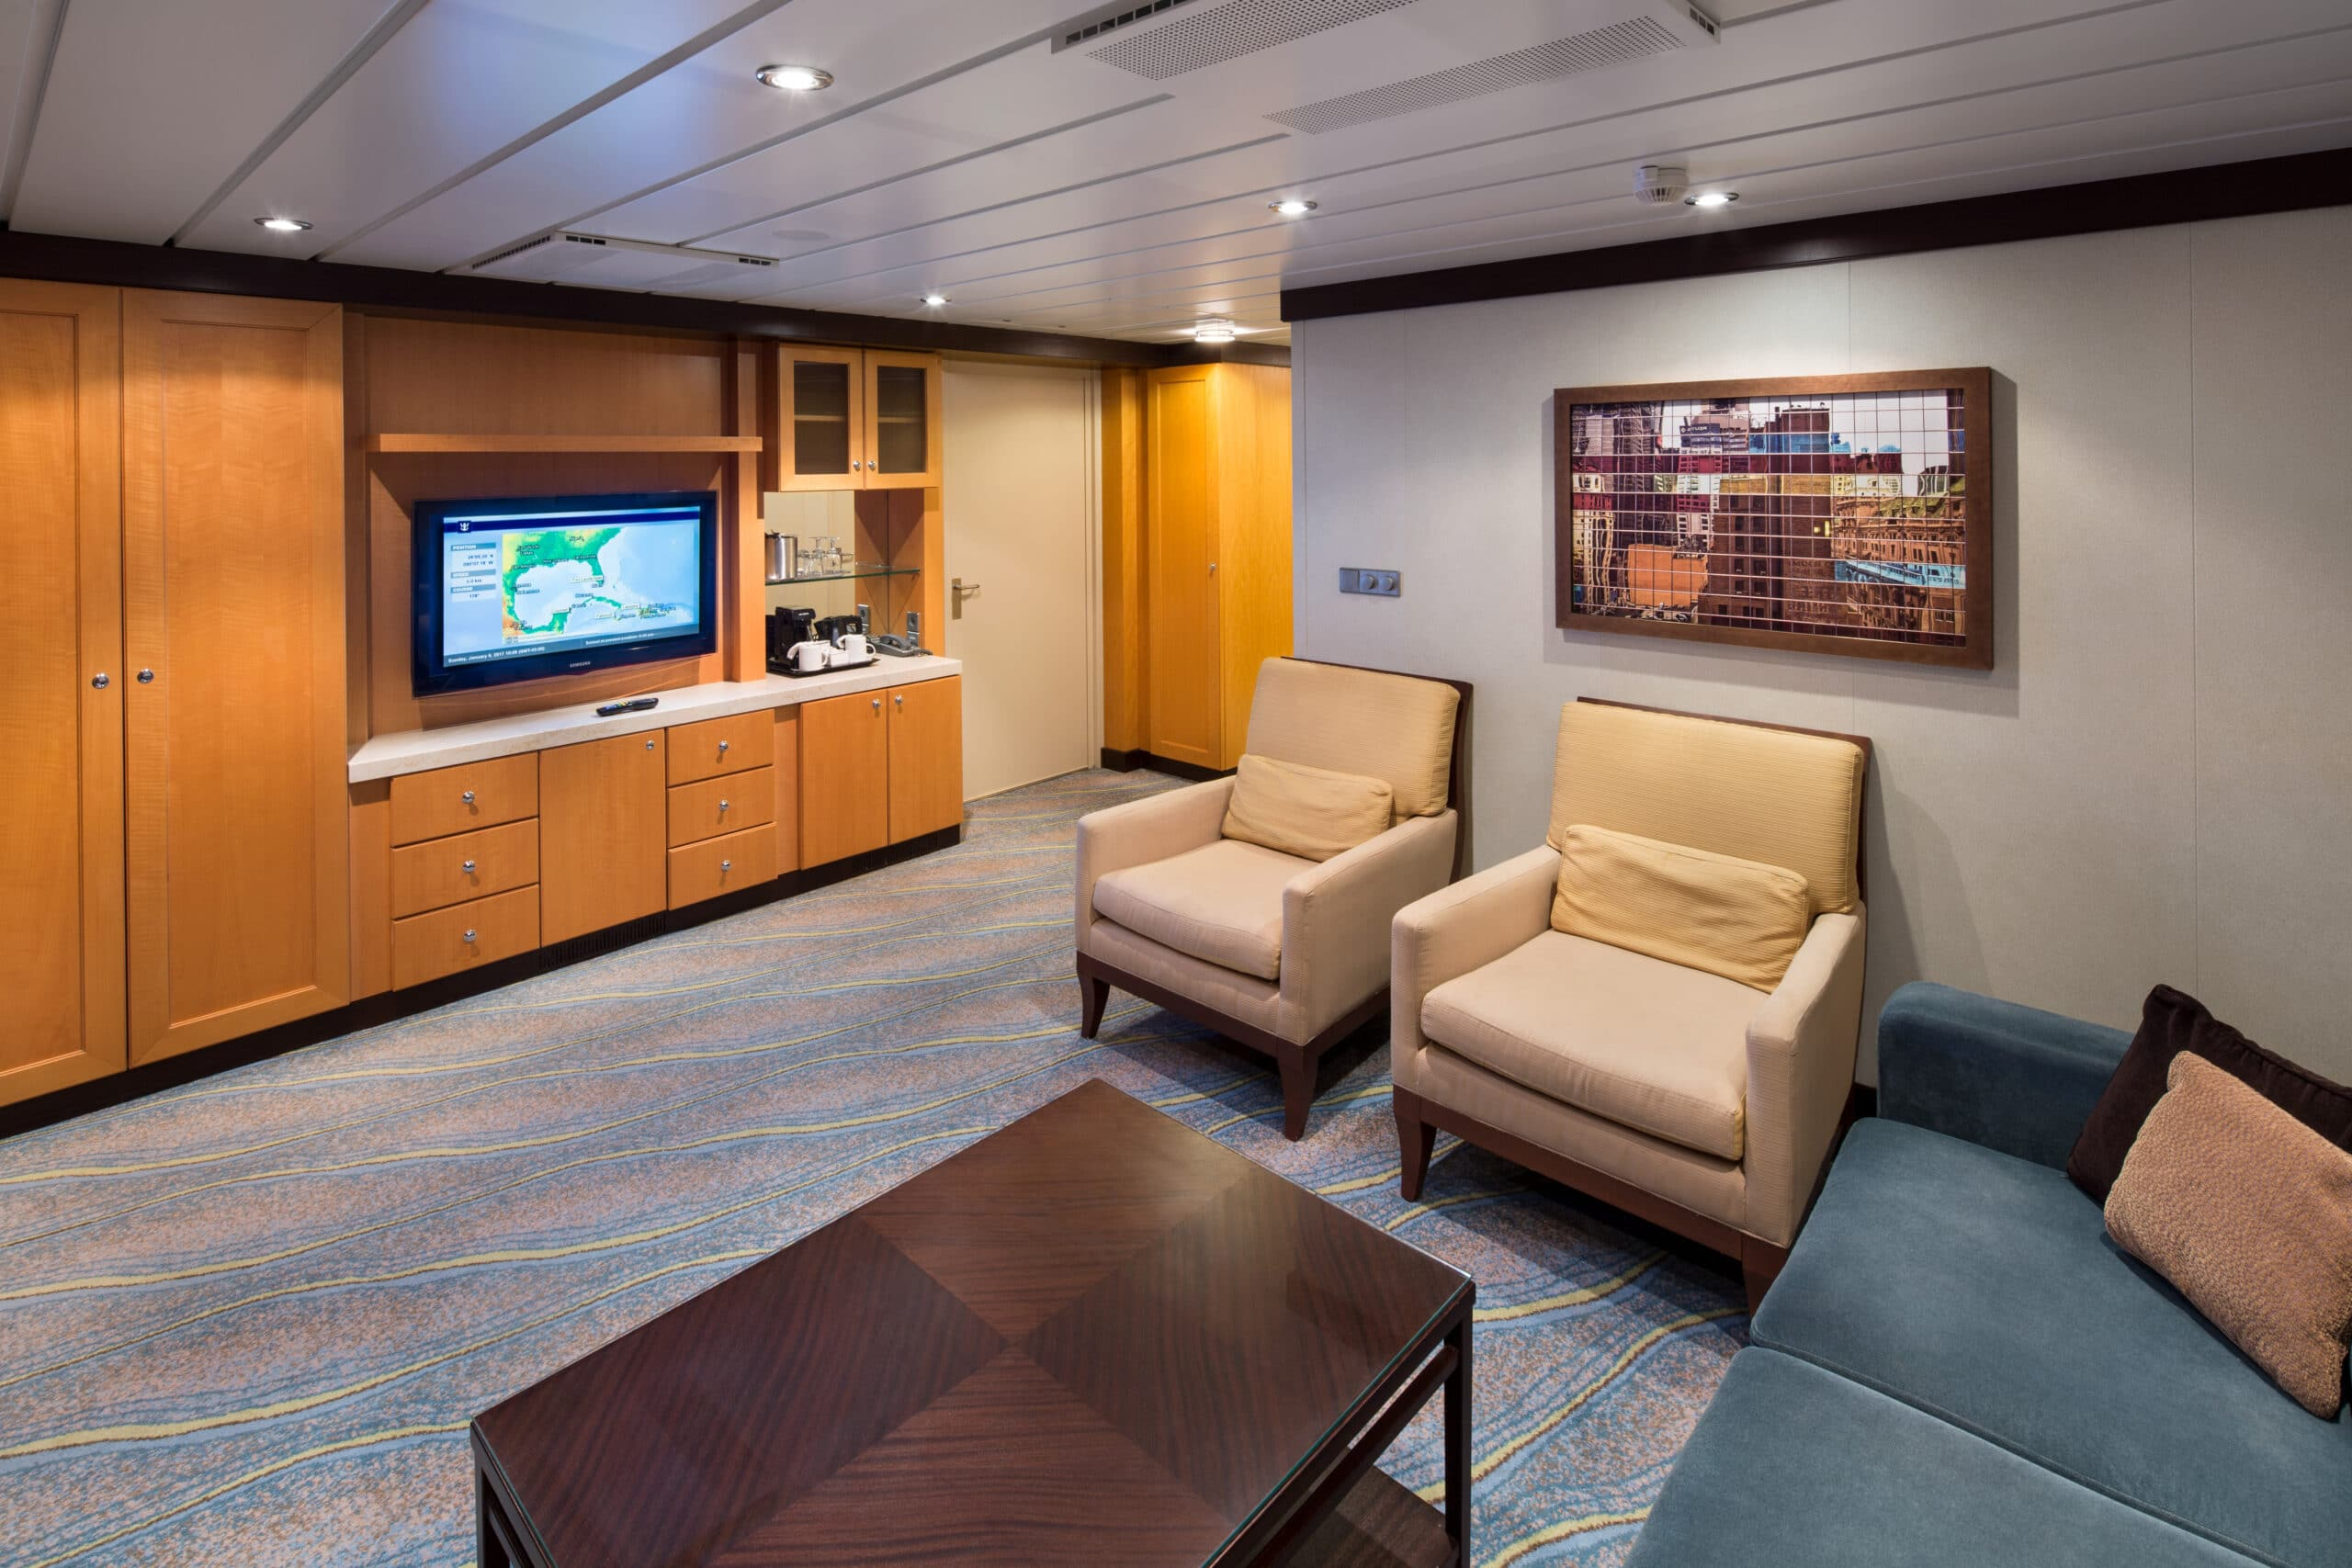 Royal-Caribbean-International-Allure-of-the-Seas-Oasis-of-the-seas-schip-cruiseschip-categorie-GT-Grand-Suite-two-bedroom